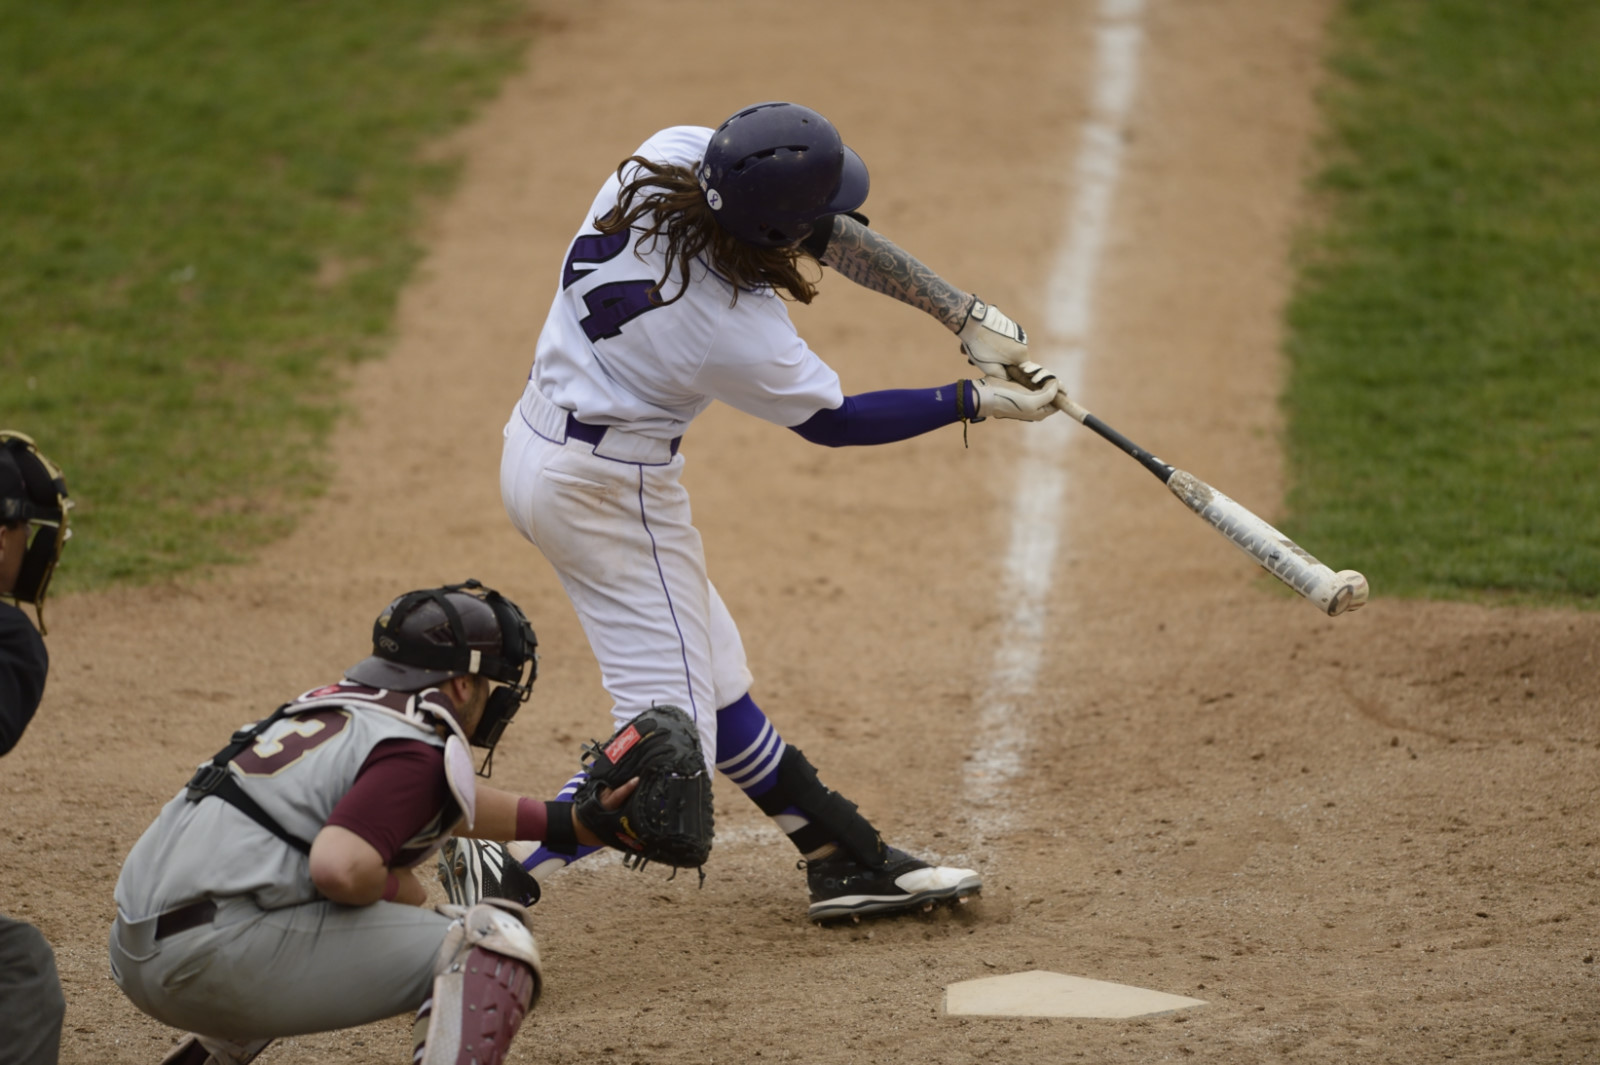 Purple Knights Nipped By Queens (N.Y.), 5-4, In ECC Baseball Action